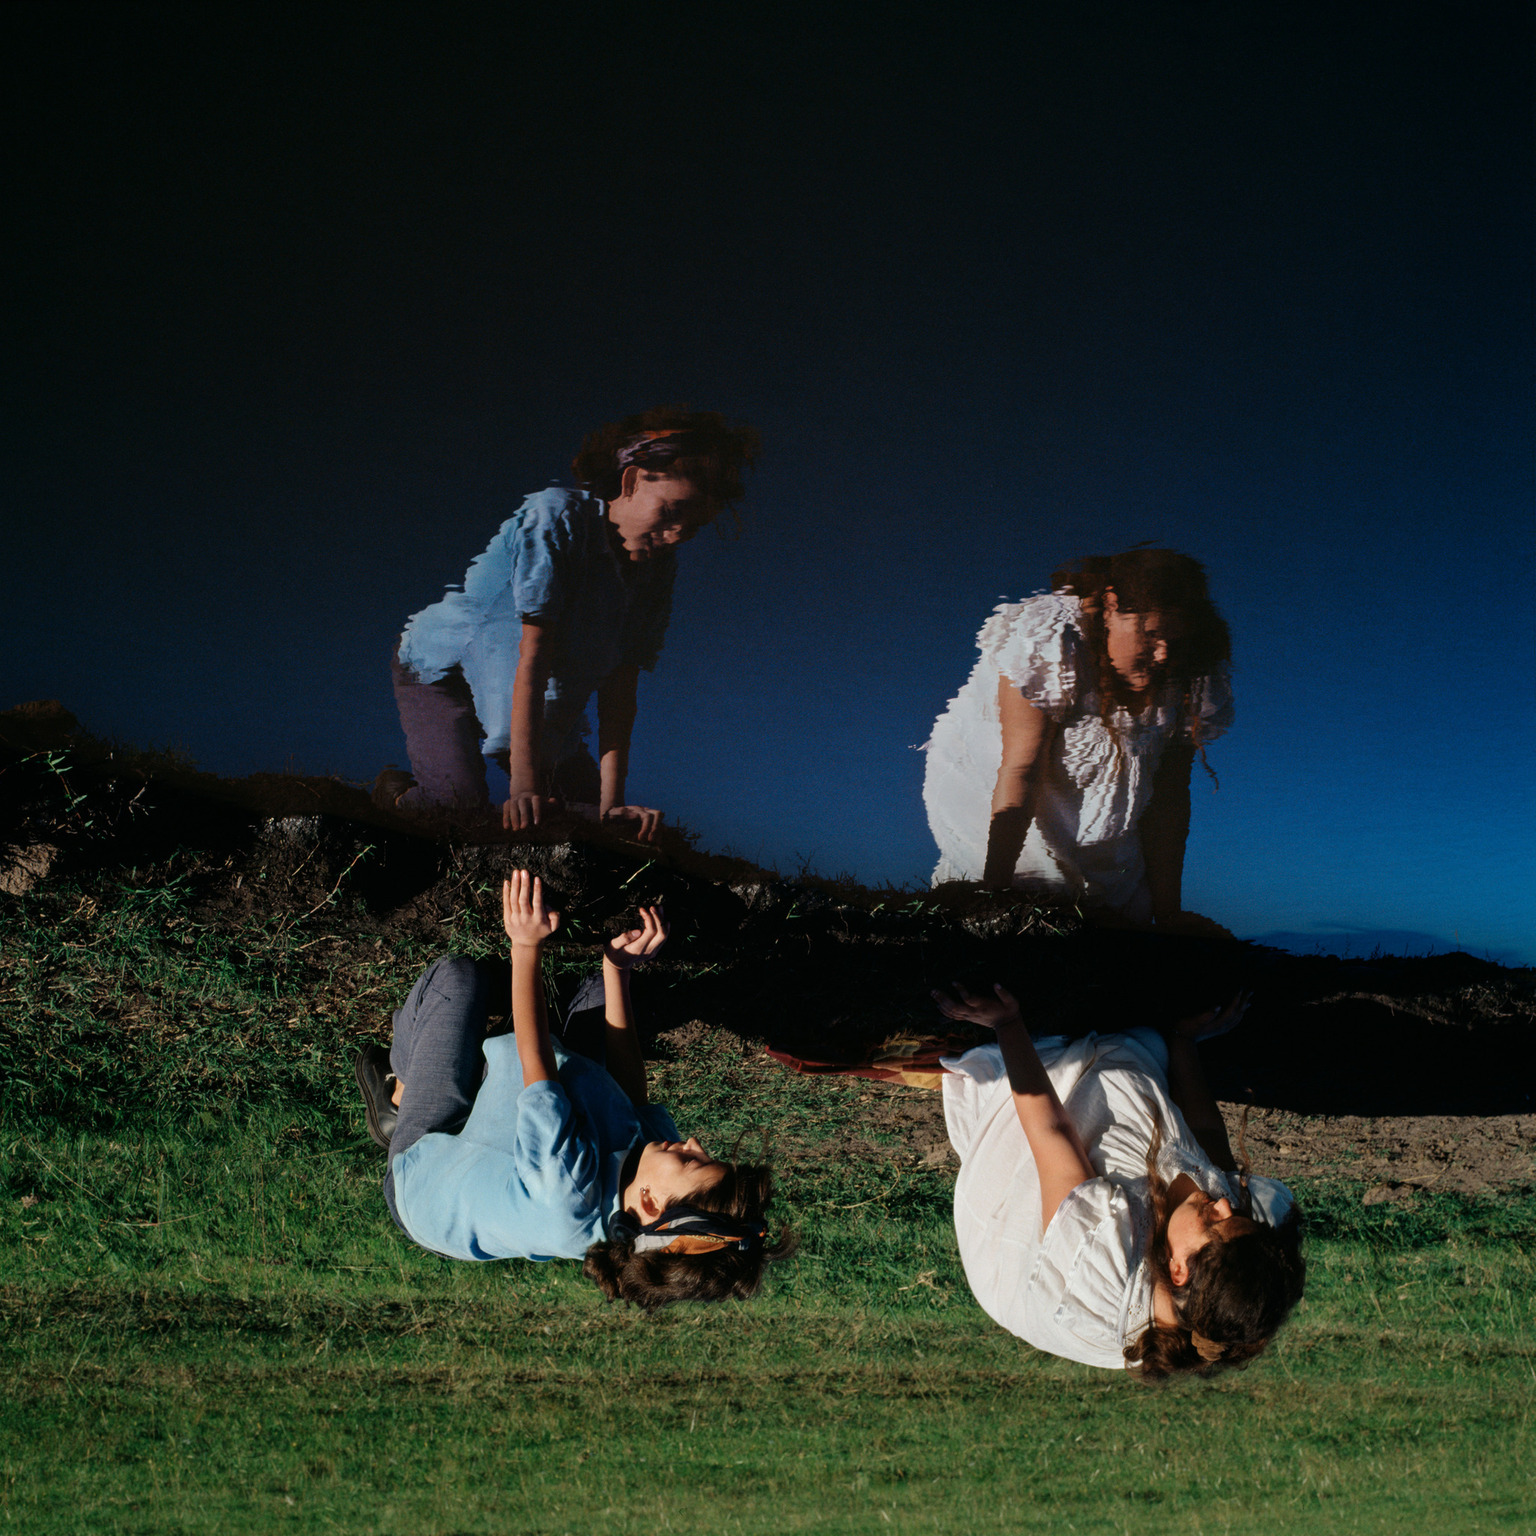 Color portrait of two girls by photographer Alessandra Sanguinetti - The Illusion of An Everlasting Summer